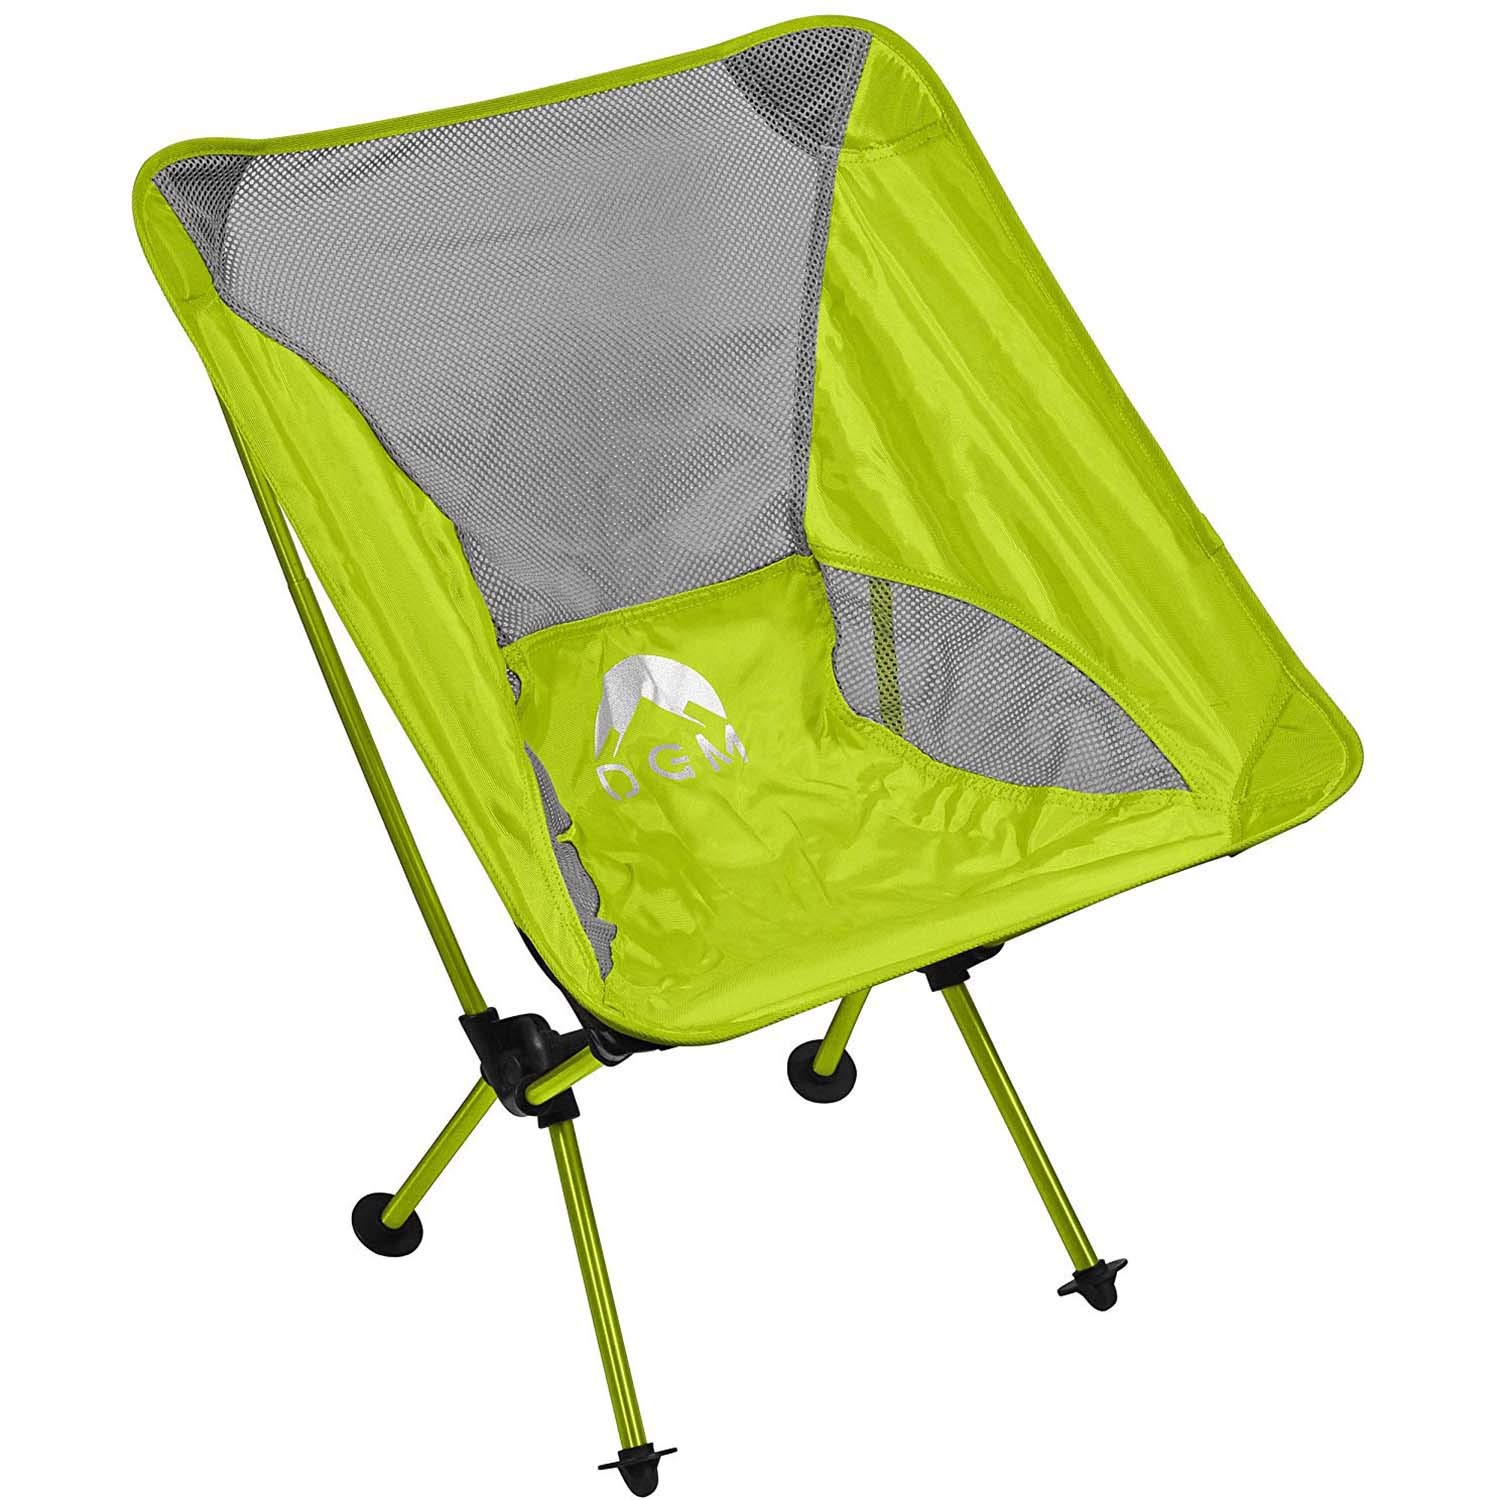 DGM Lifestyles Portable and Heavy Duty Folding Camping Chair Mesh Fabric Comfortable Deep Seat and Sturdy Metal Frame Adjustable Carry Strap and Durable Lightweight in Travel Case